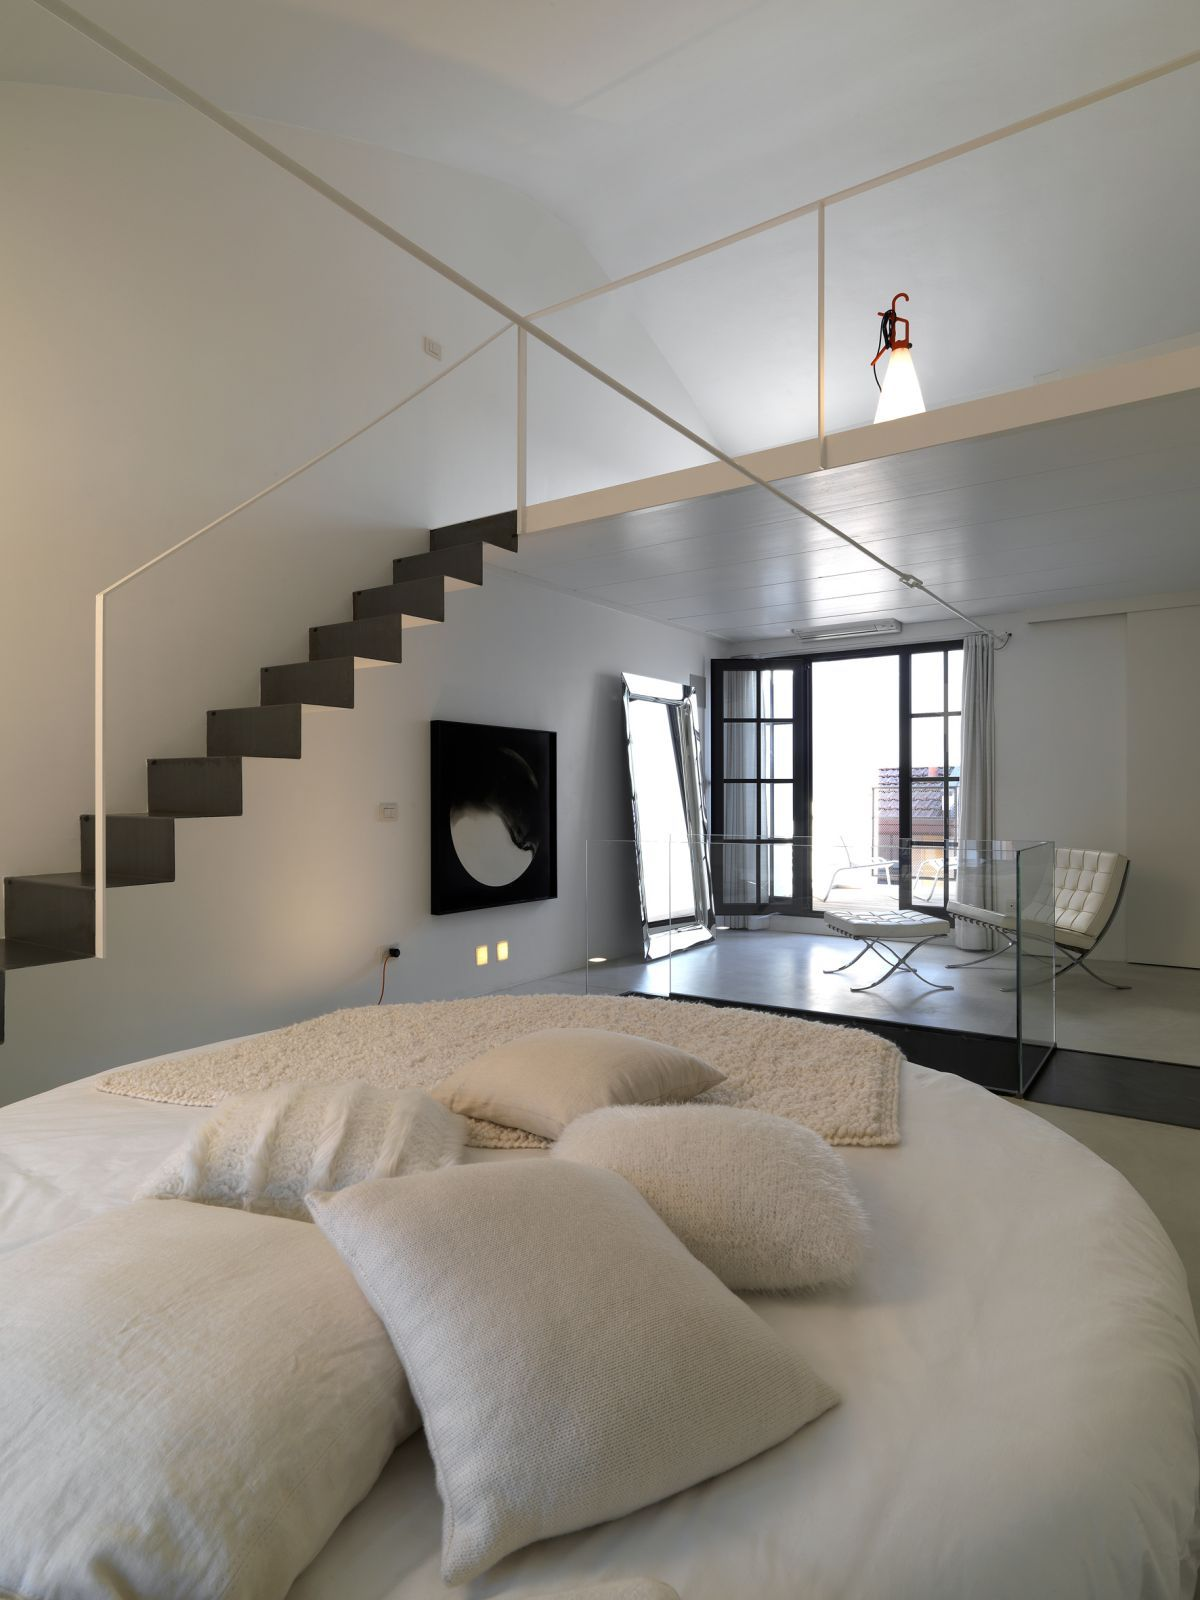 Sumptuous Modern Master Loft Bedroom Interior Designs With Rounded